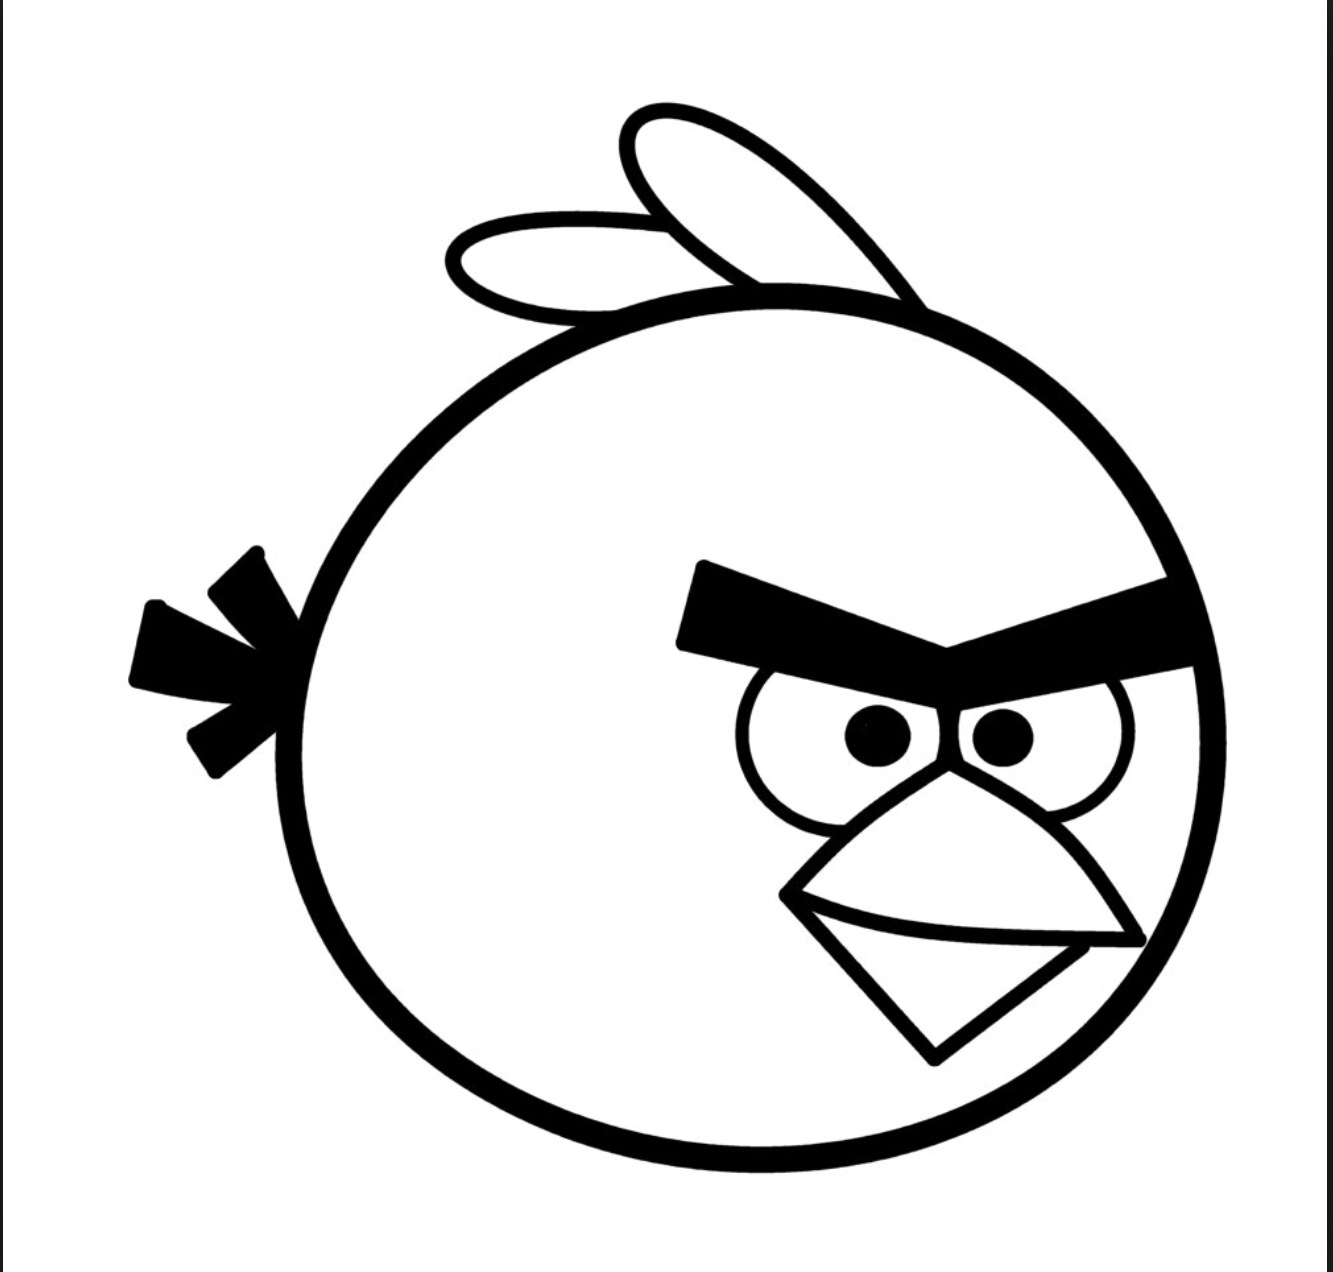 angry birds outline 1000 images about angry birds on pinterest bird outline angry birds outline